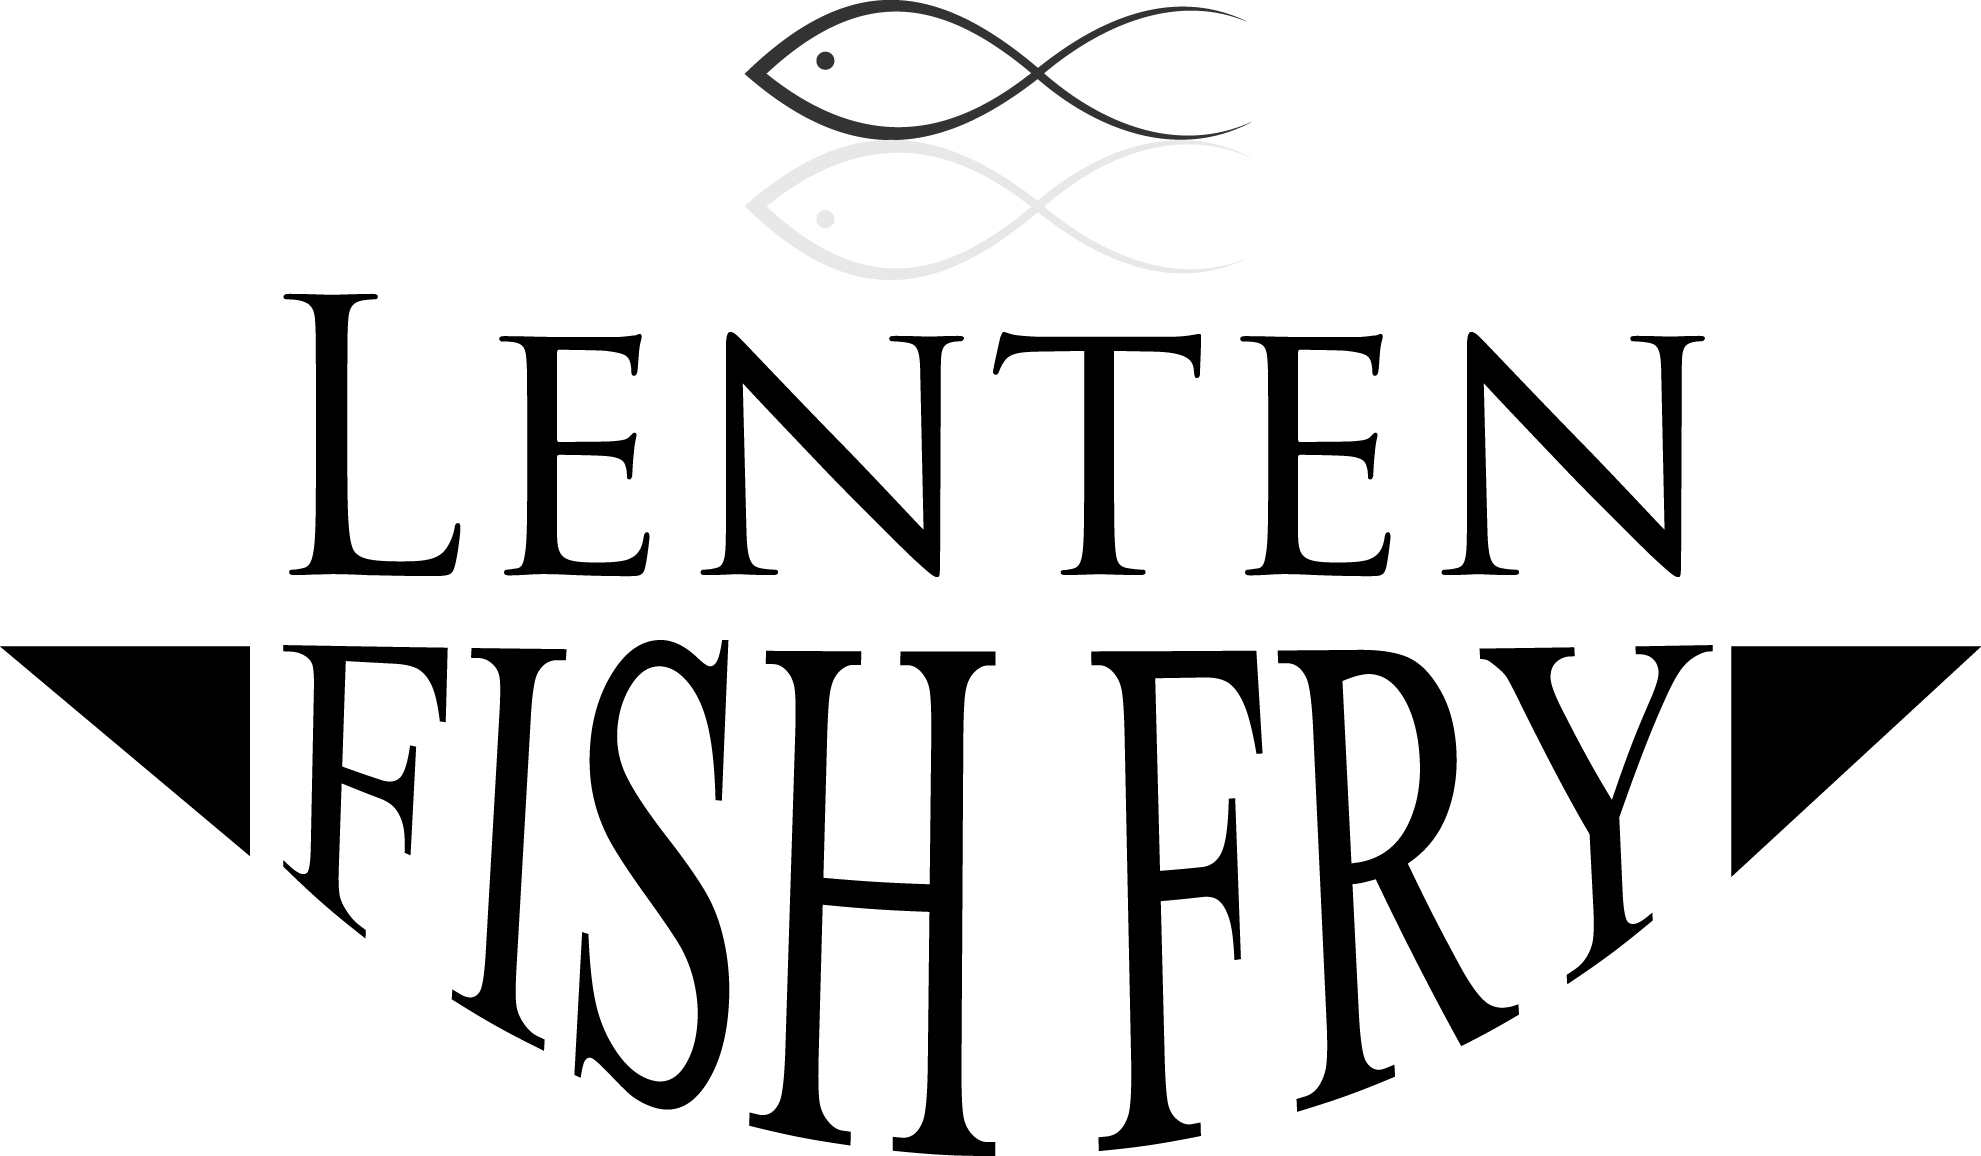 Lff the church of. Fish fry tilapia clipart black and white